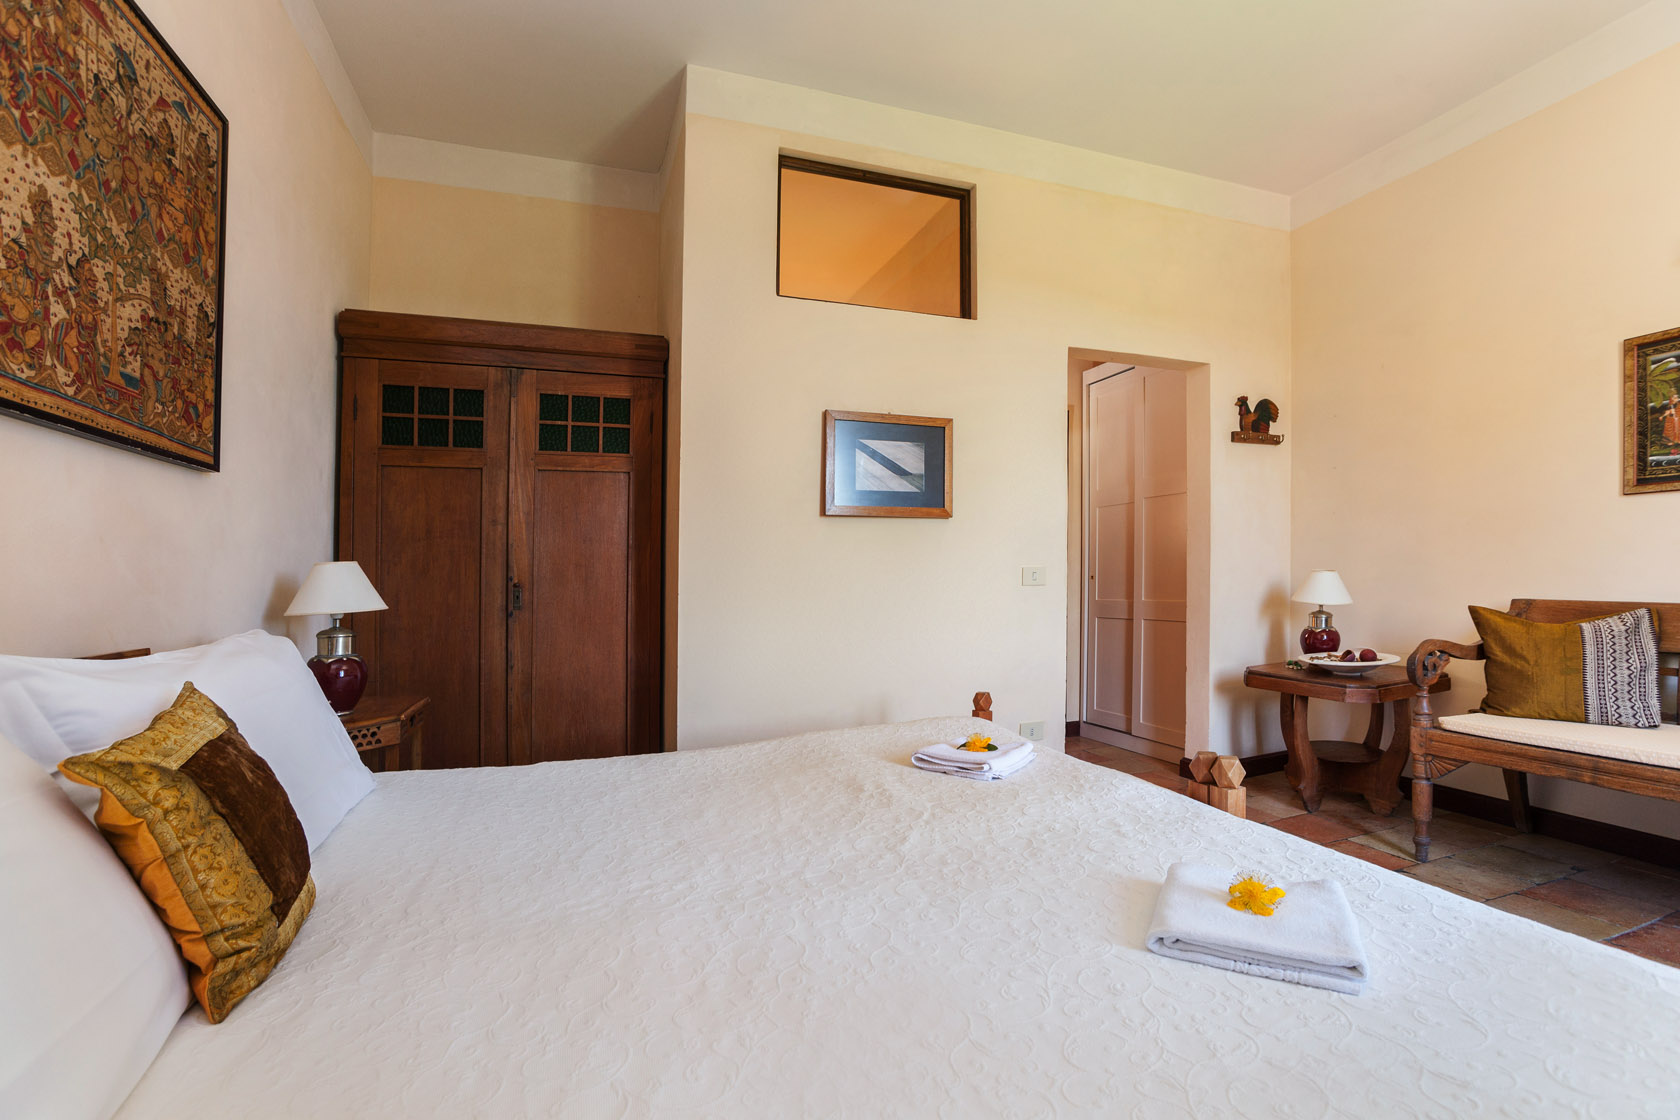 locanda-rooms-05.jpg